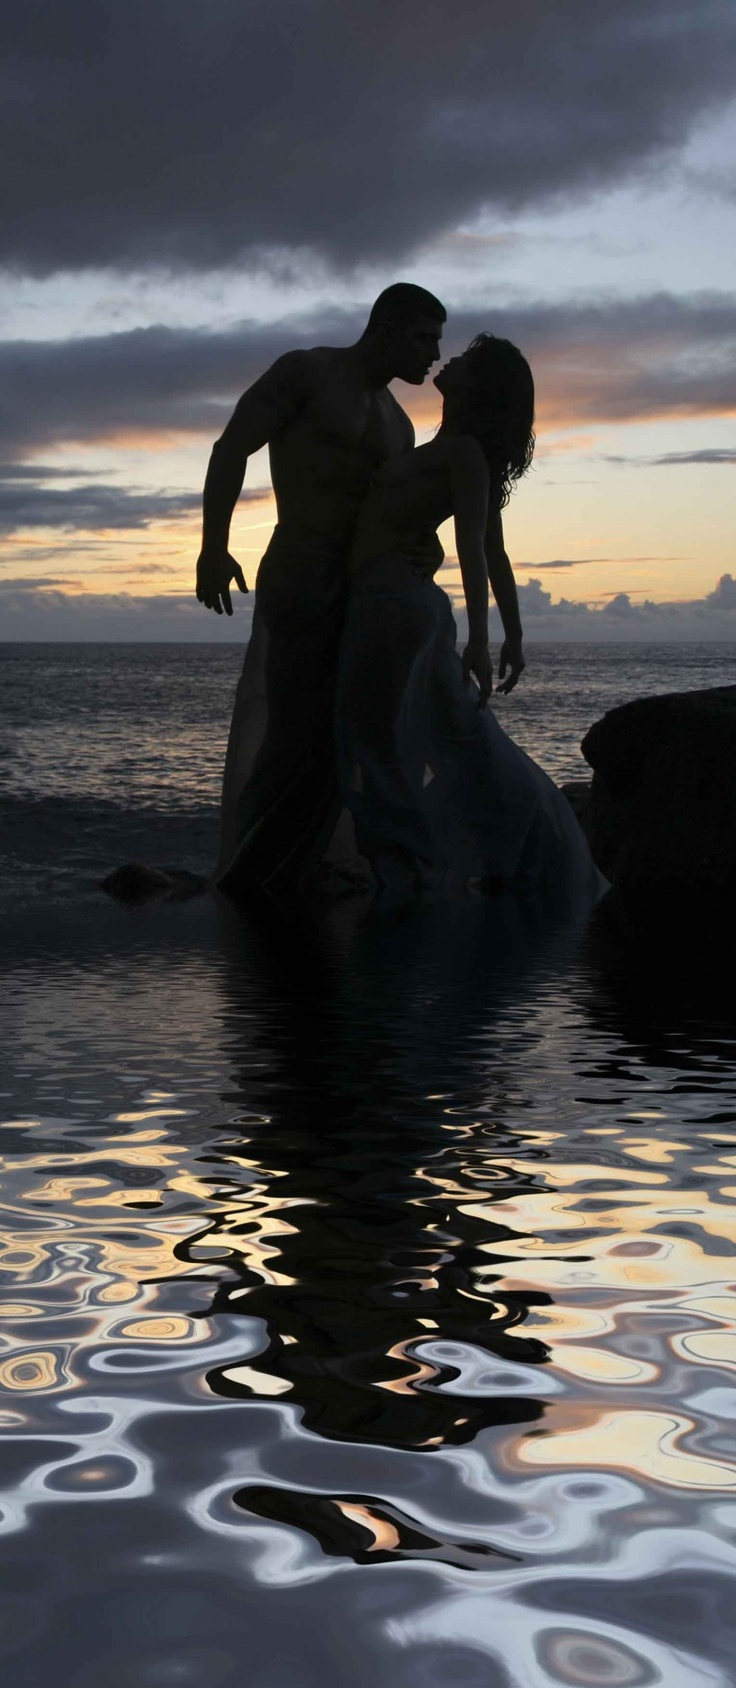 .: Sensual Love, Sensual Romance, Couples Silhouette, Sunset, Photos Engagement Couples, Beautiful Silhouettes, Sensual Sexy, Romantic Fantasy Photography, Beautiful Pics